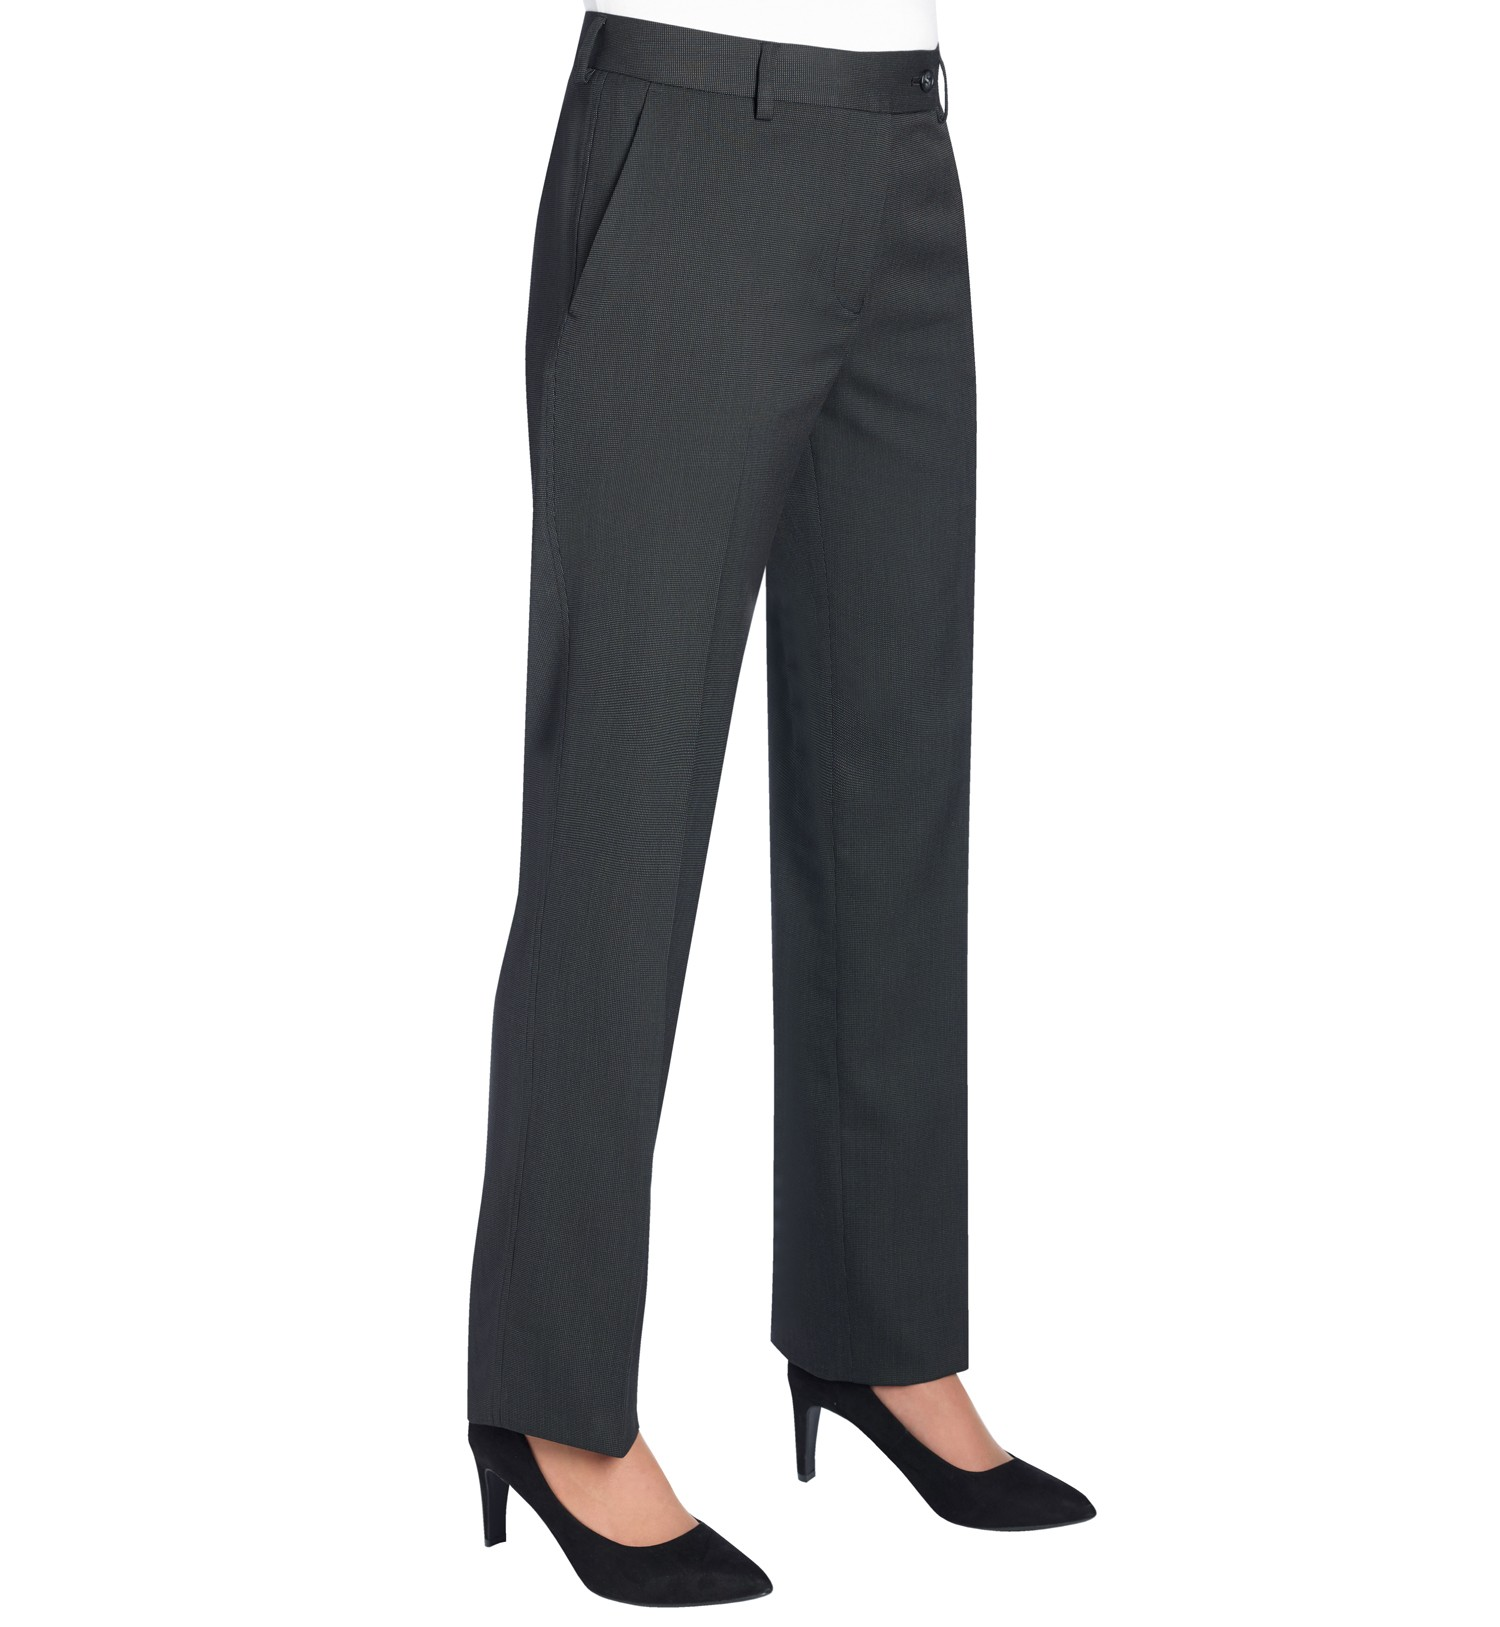 The trousers have a wide webbed elastic band sewn into the waist, which is intended to make a belt or suspenders unnecessary, hence the name (sans a belt). The Sansabelt slack was invented by Silver Manufacturer, located in East Chicago, Indiana, which subsequently sold the company and their patent to Jaymar-Ruby, an Indiana-based clothing.